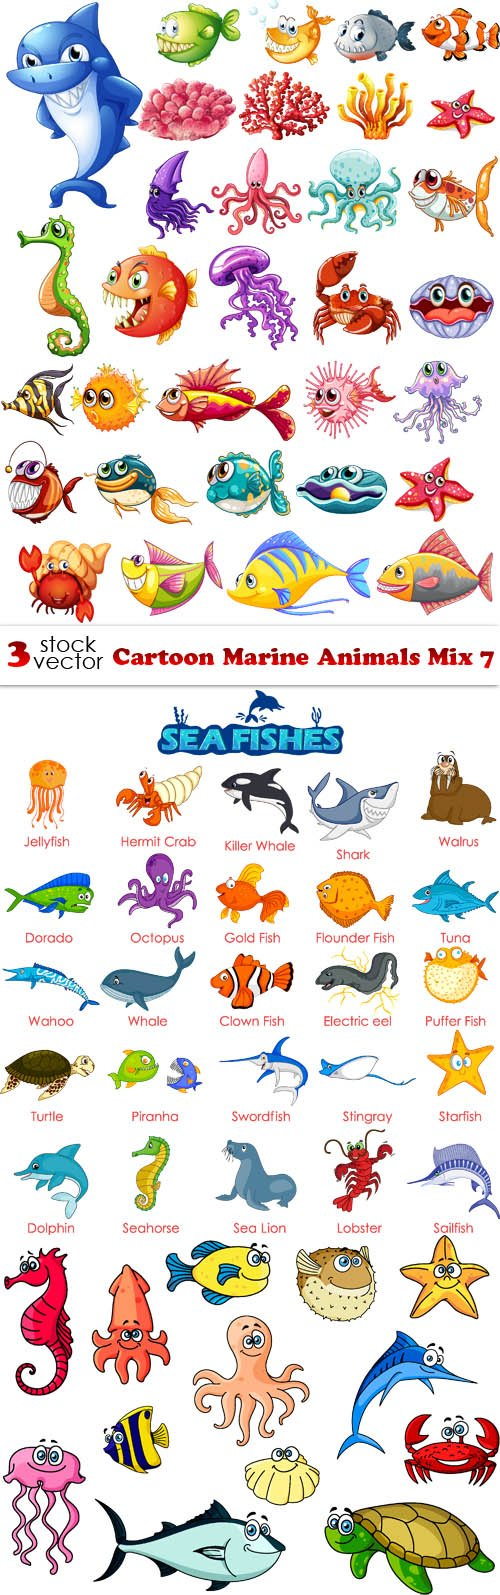 Vectors - Cartoon Marine Animals Mix 7